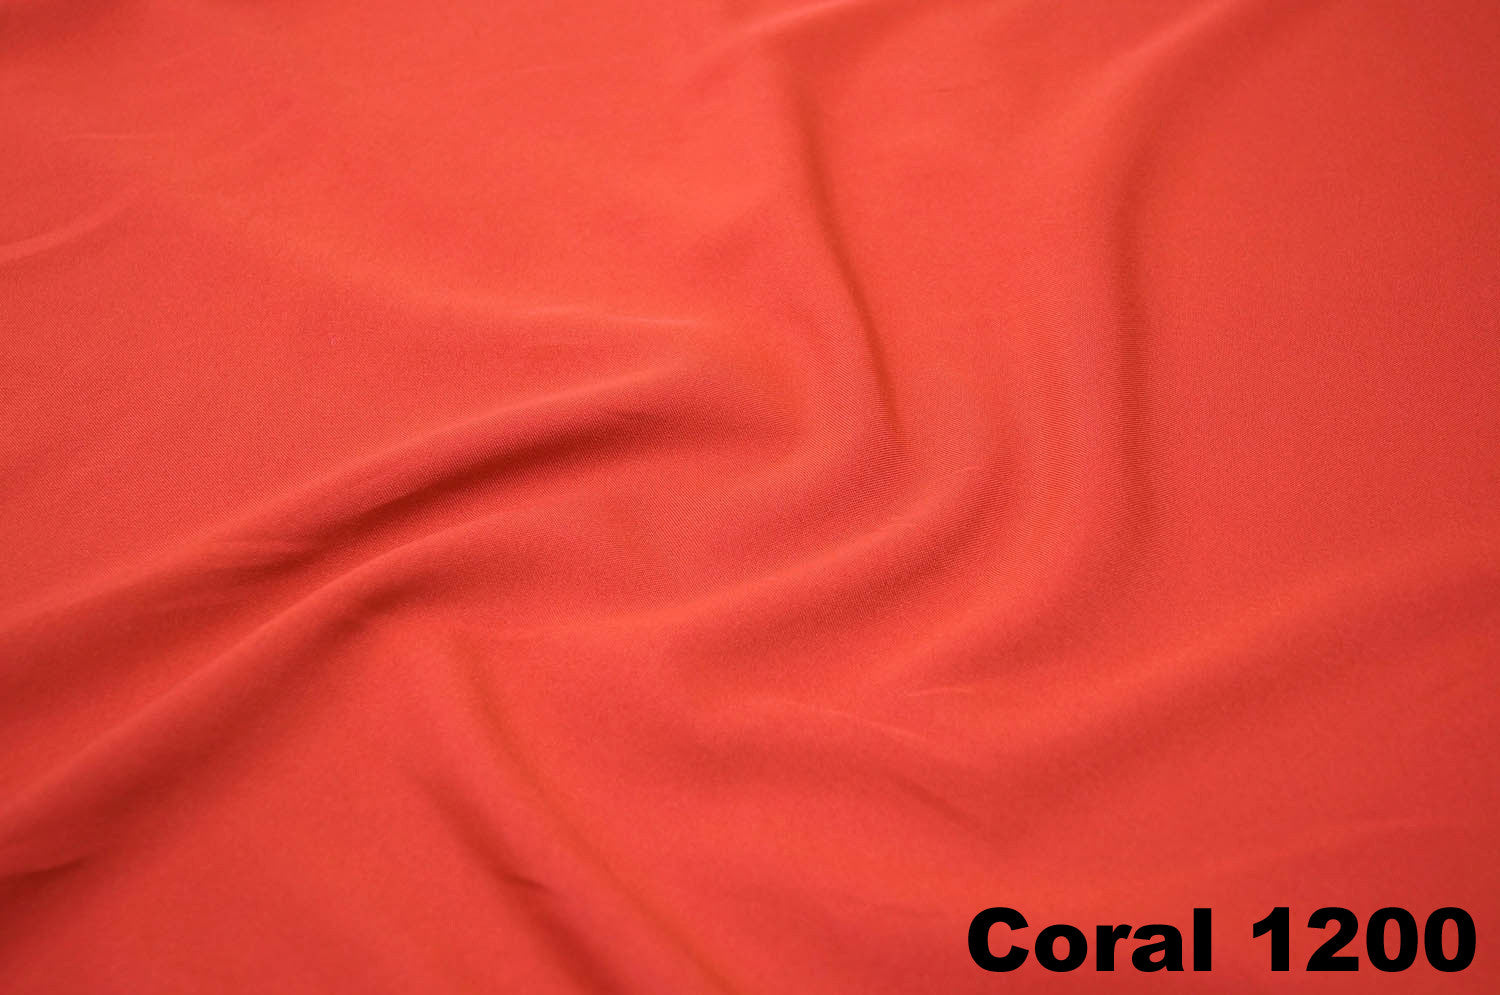 CORAL 1200